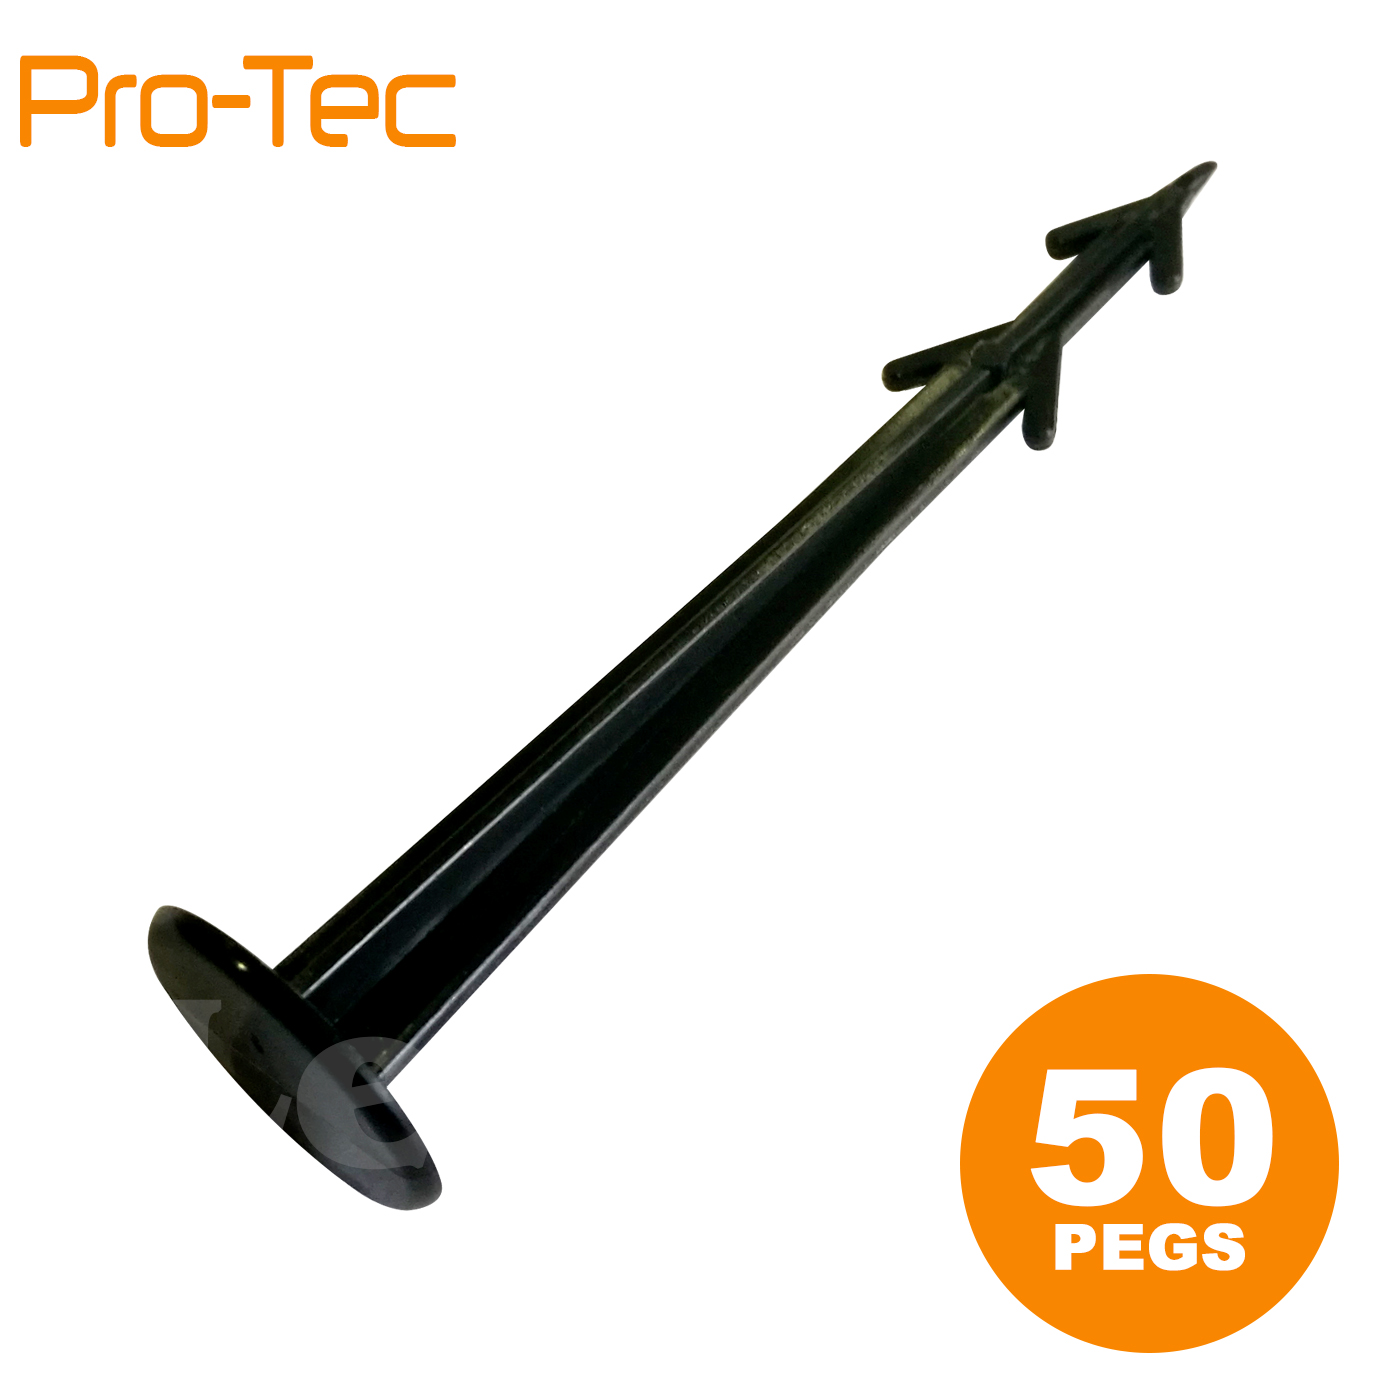 50 Pegs for weed control fabric